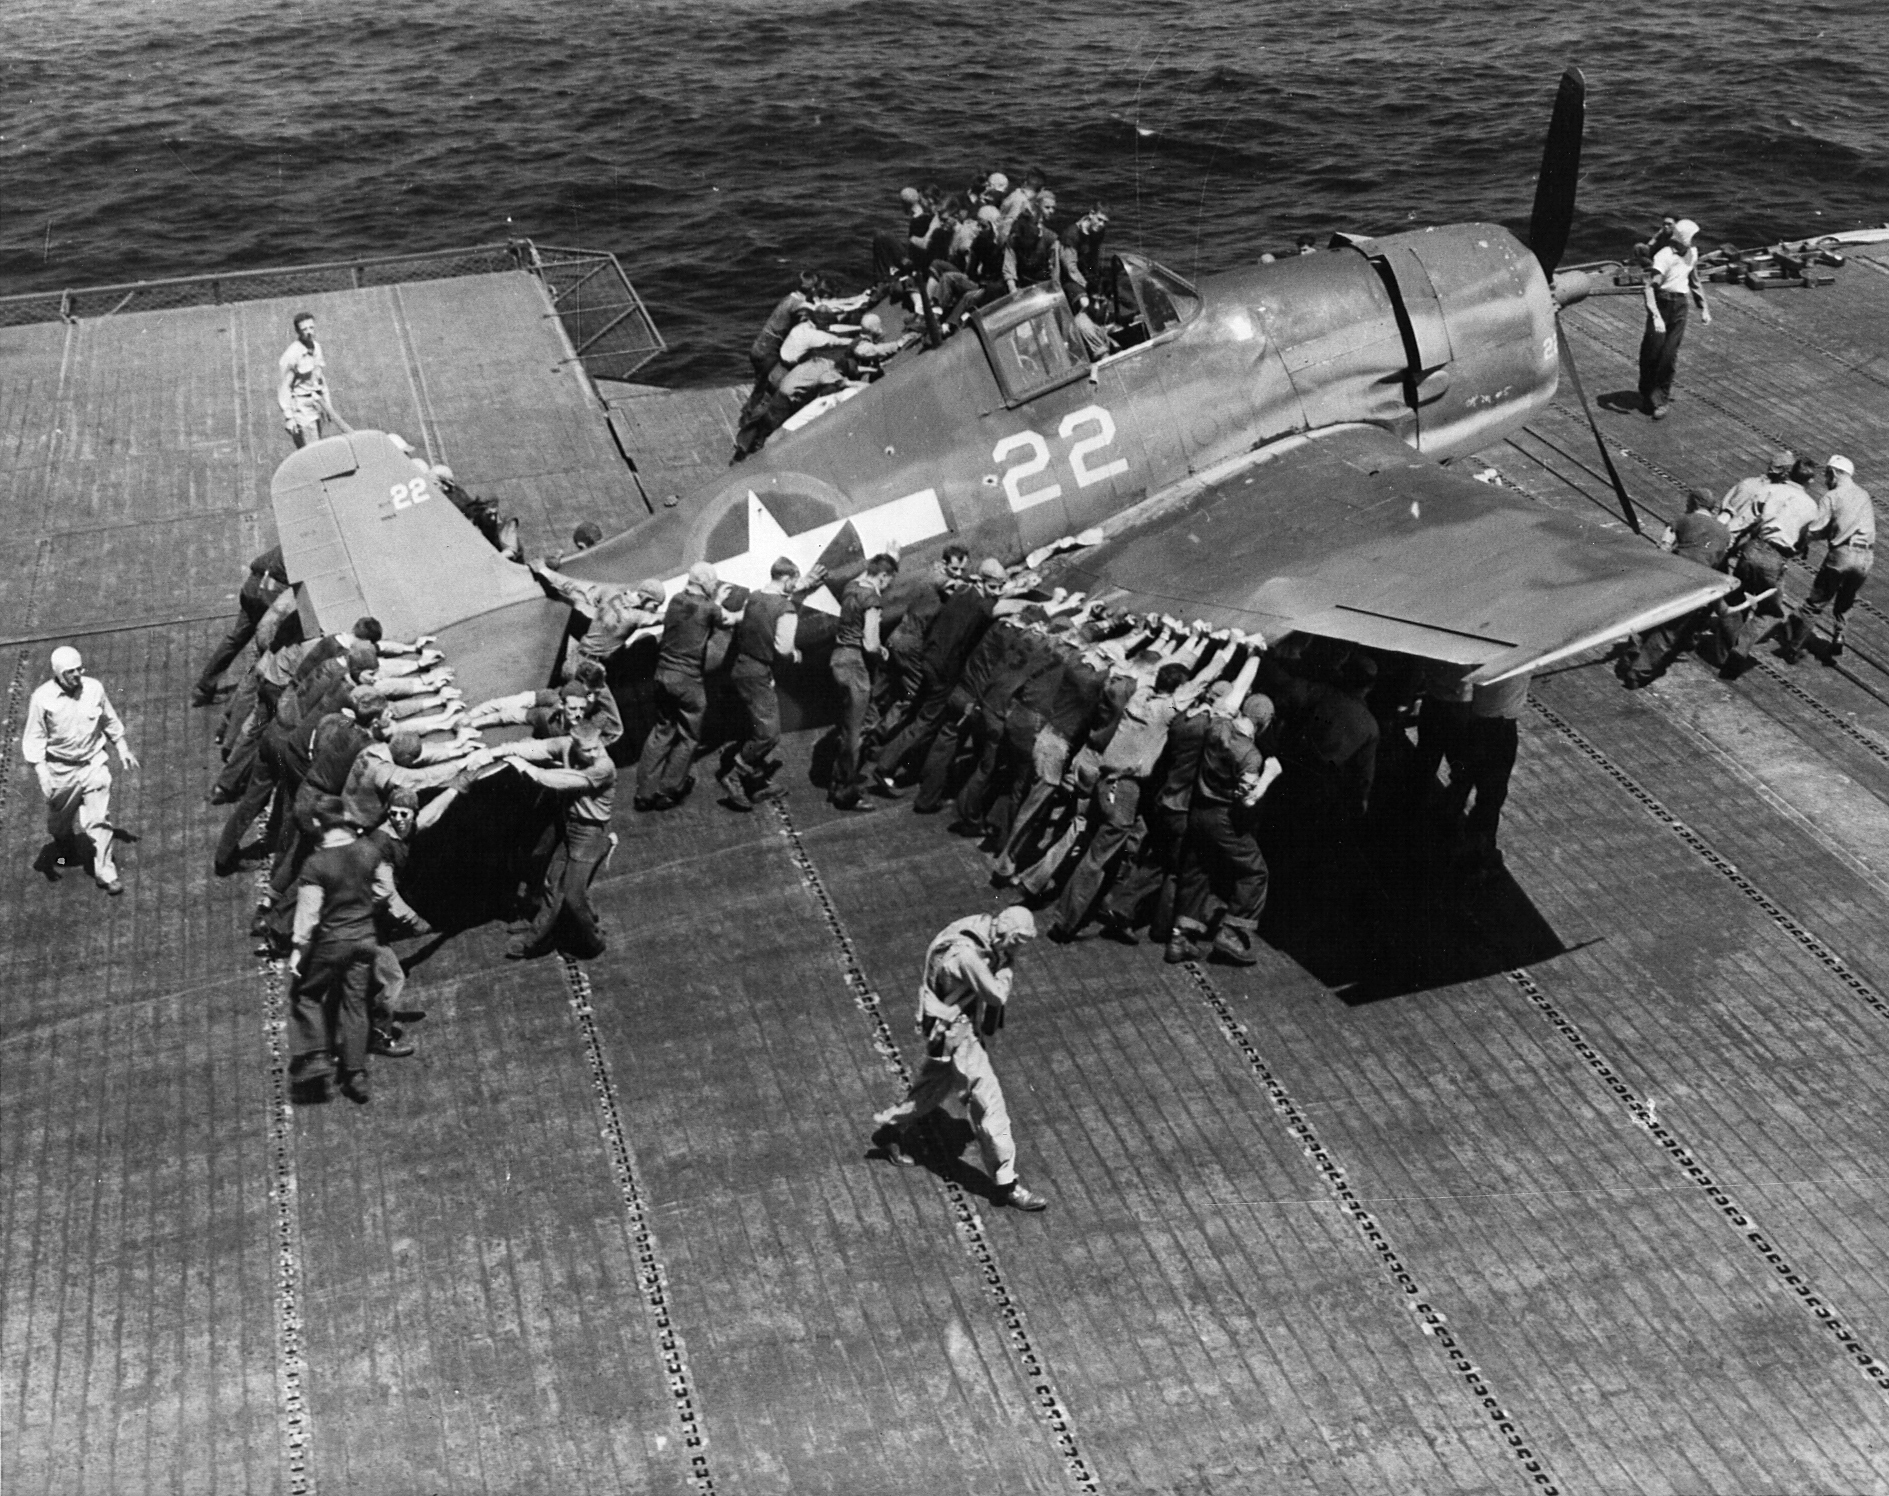 Grumman F6F 3 Hellcat VF 16 White 22 being positioned for launch CV 16 USS Lexington 1944 01